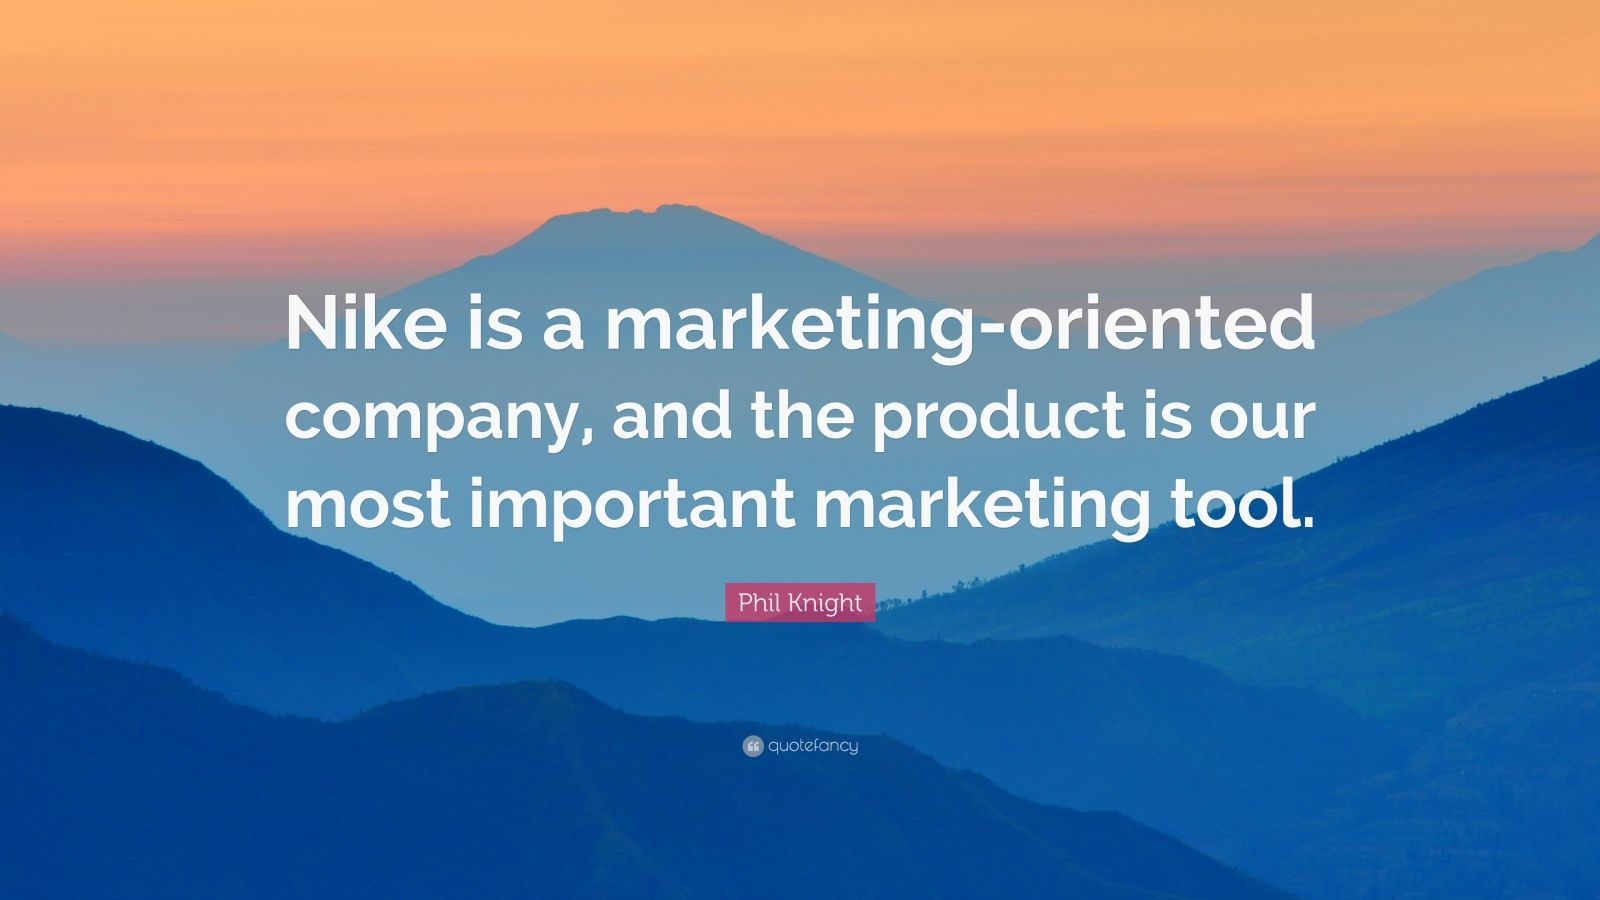 nikes marketing tool In 1978, brs, inc officially renamed itself to nike, inc beginning with ilie nastase the first professional athlete to sign with brs/nike, the sponsorship of athletes became a key marketing tool for the rapidly growing company.